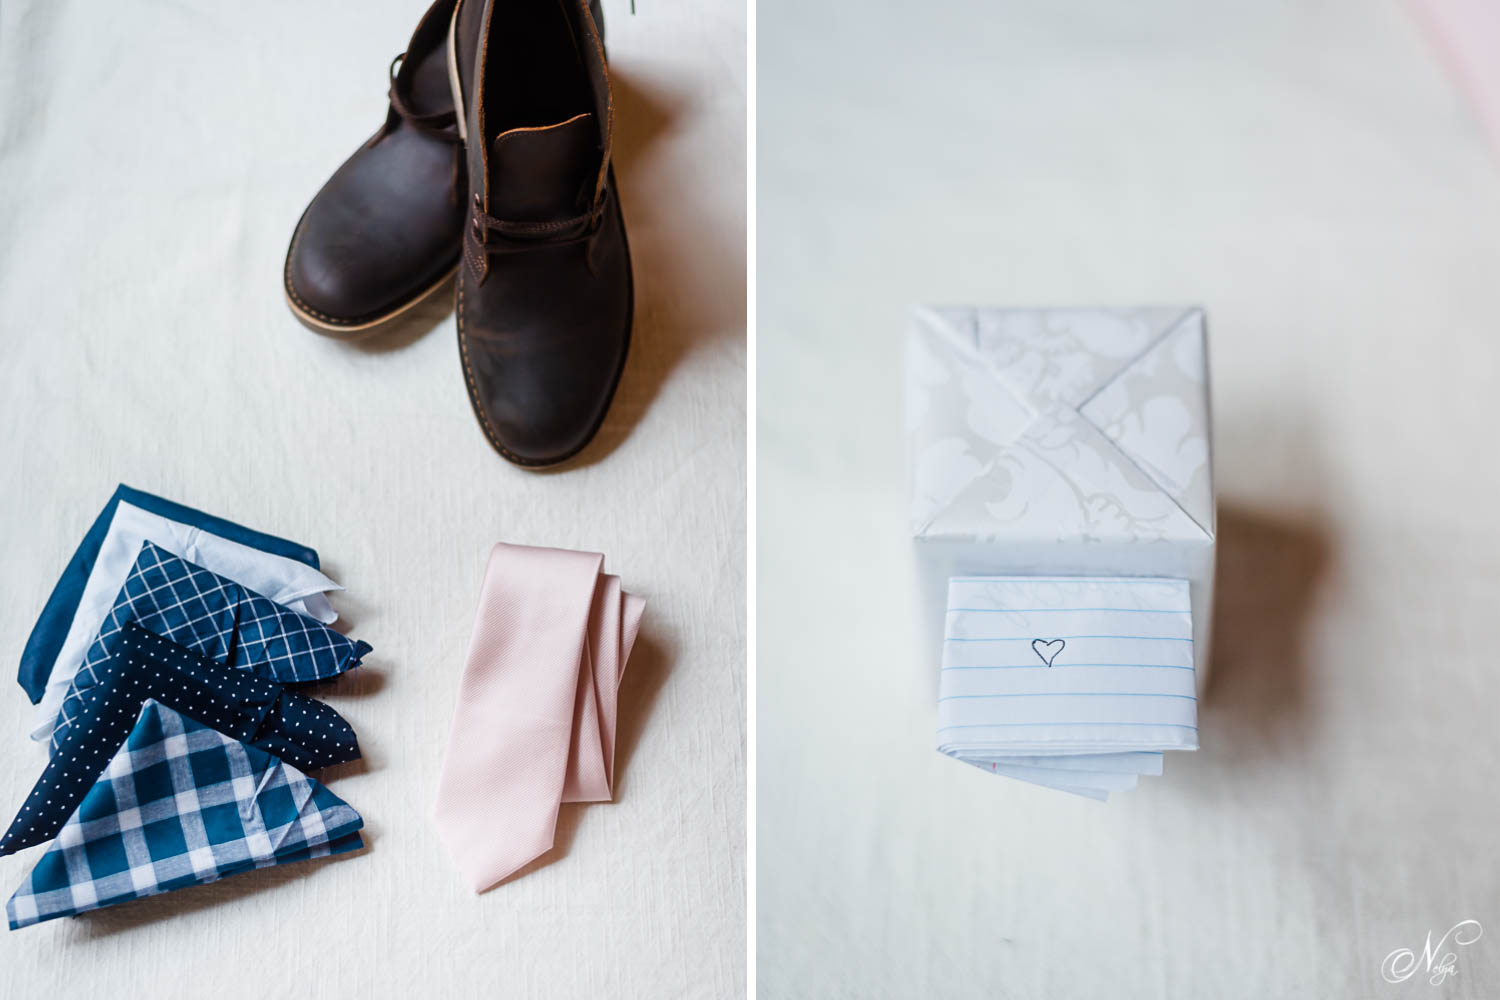 groom's leather shoes, blush colored necktie from Belk. And a wrapped gift for the groom from the bride.